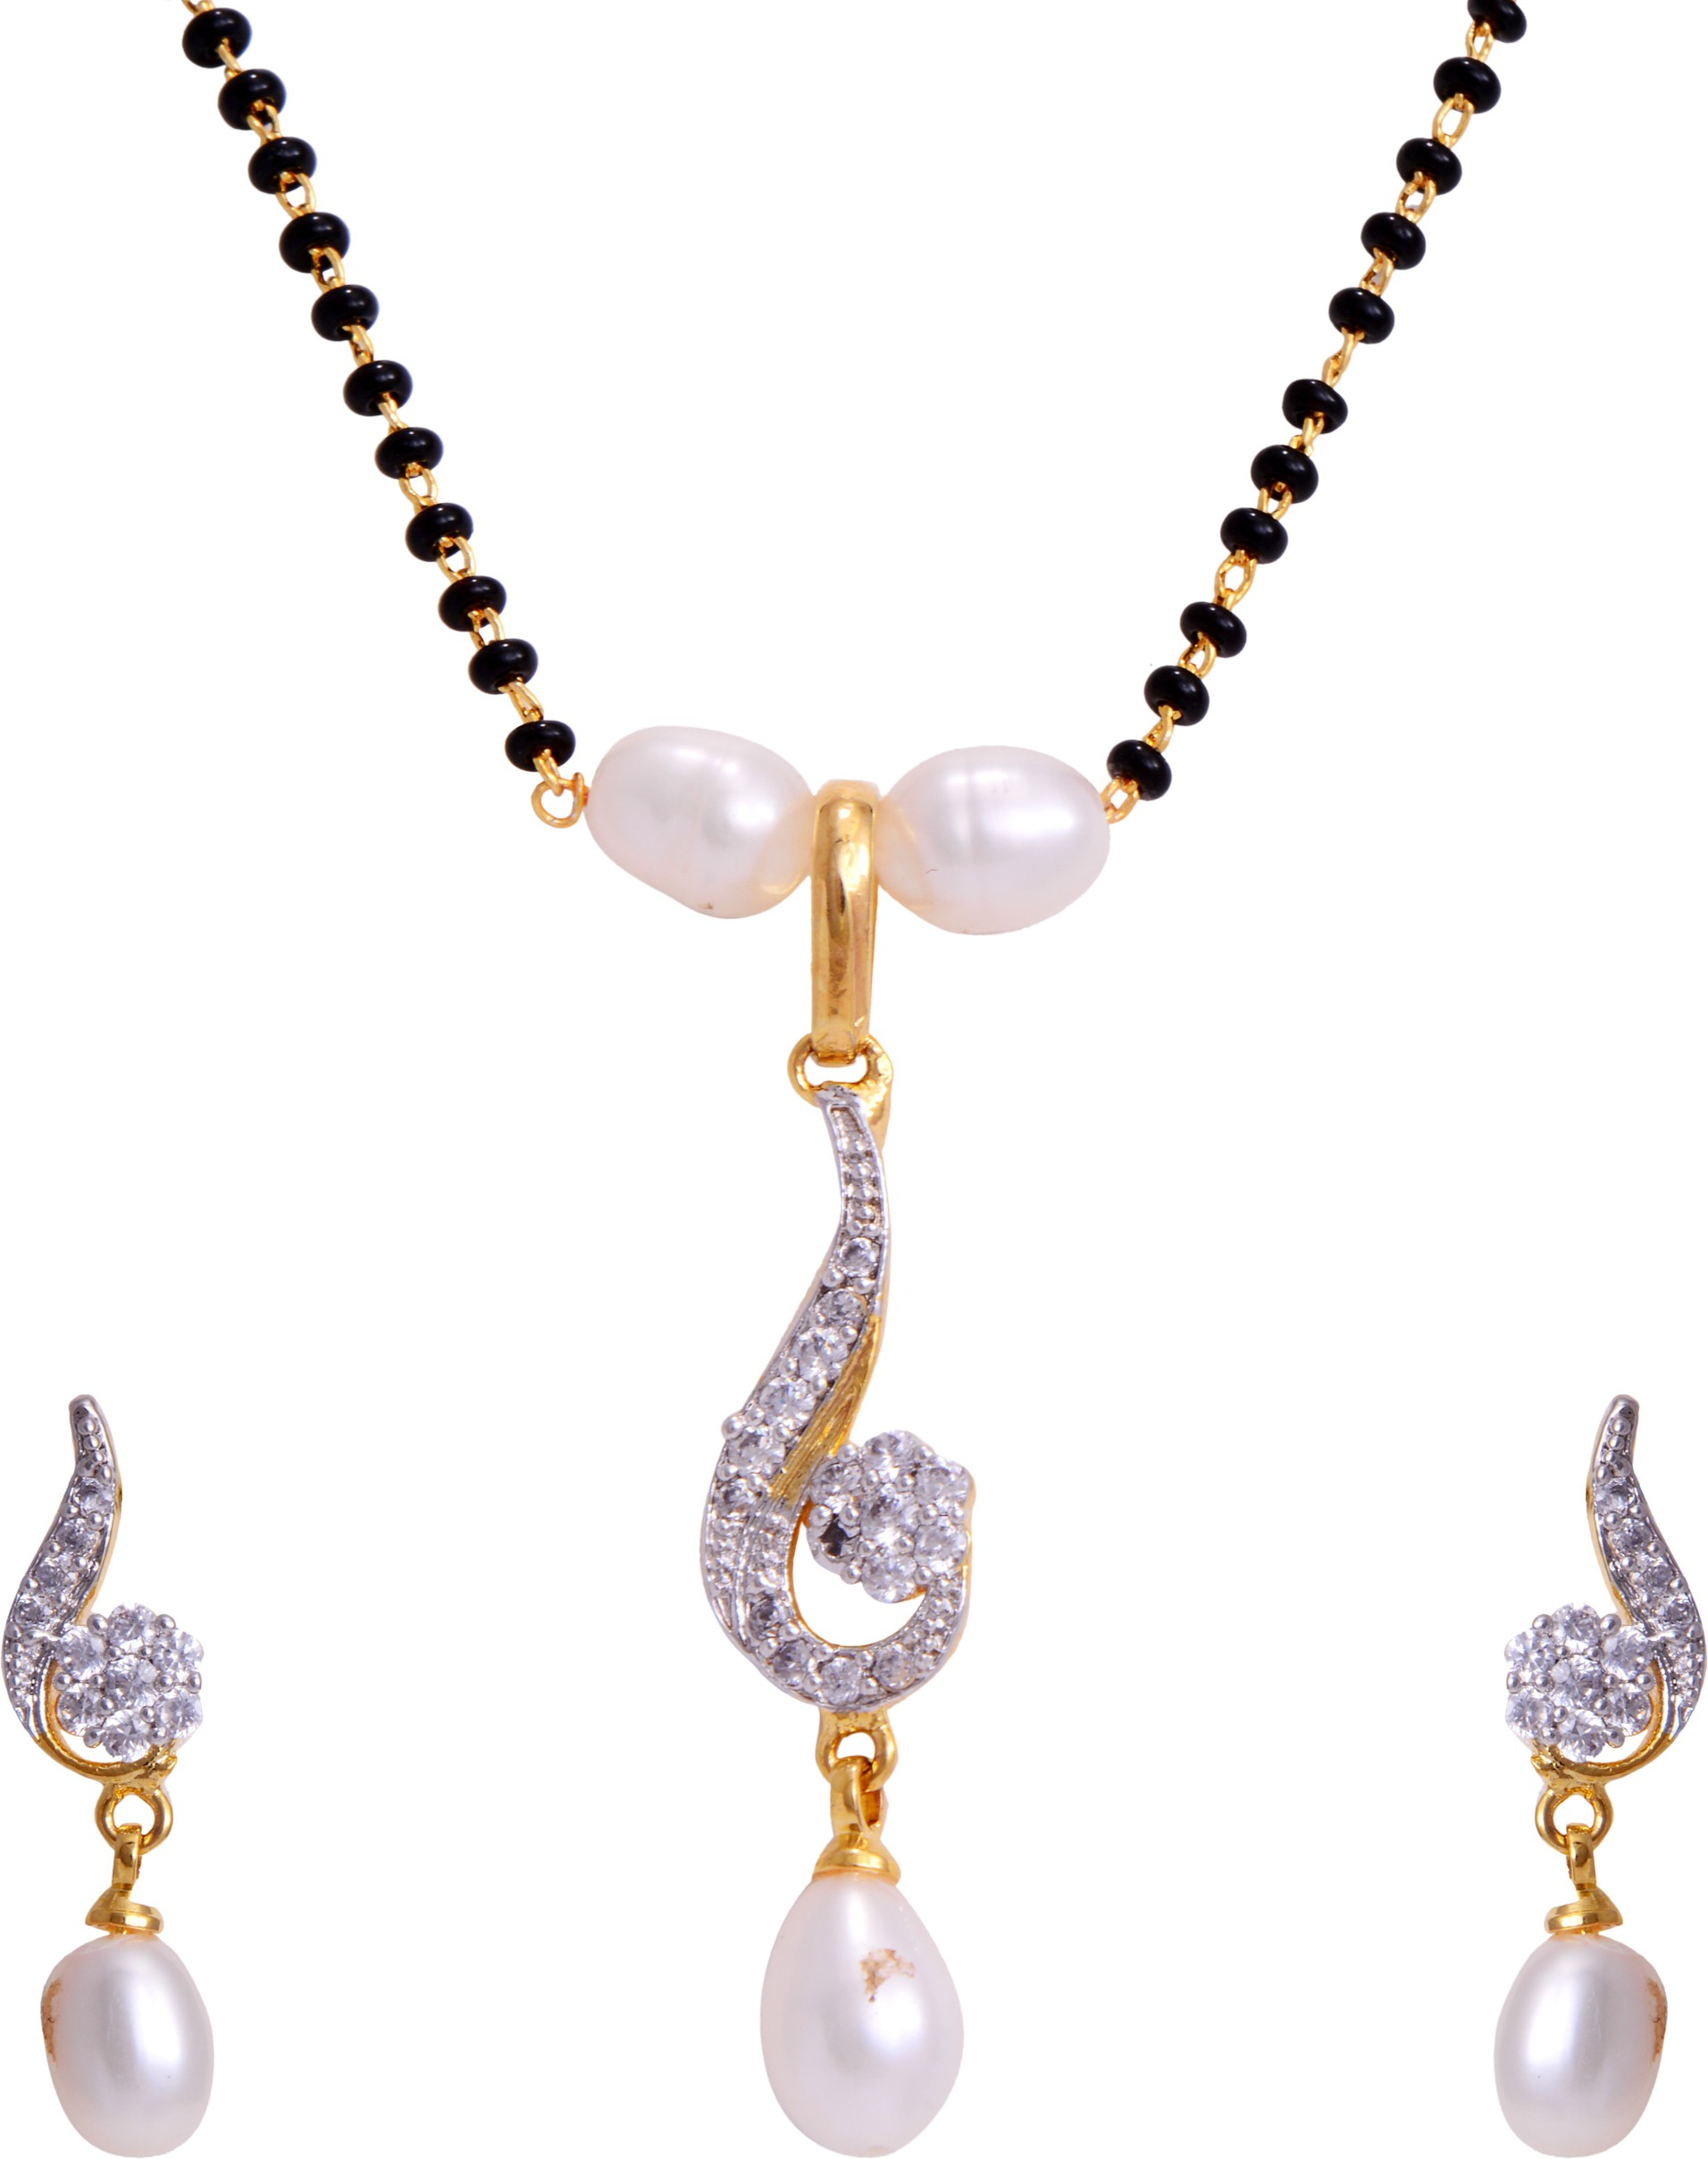 Deals - Delhi - Shine On <br> Silver Jewellery Sets<br> Category - jewellery<br> Business - Flipkart.com